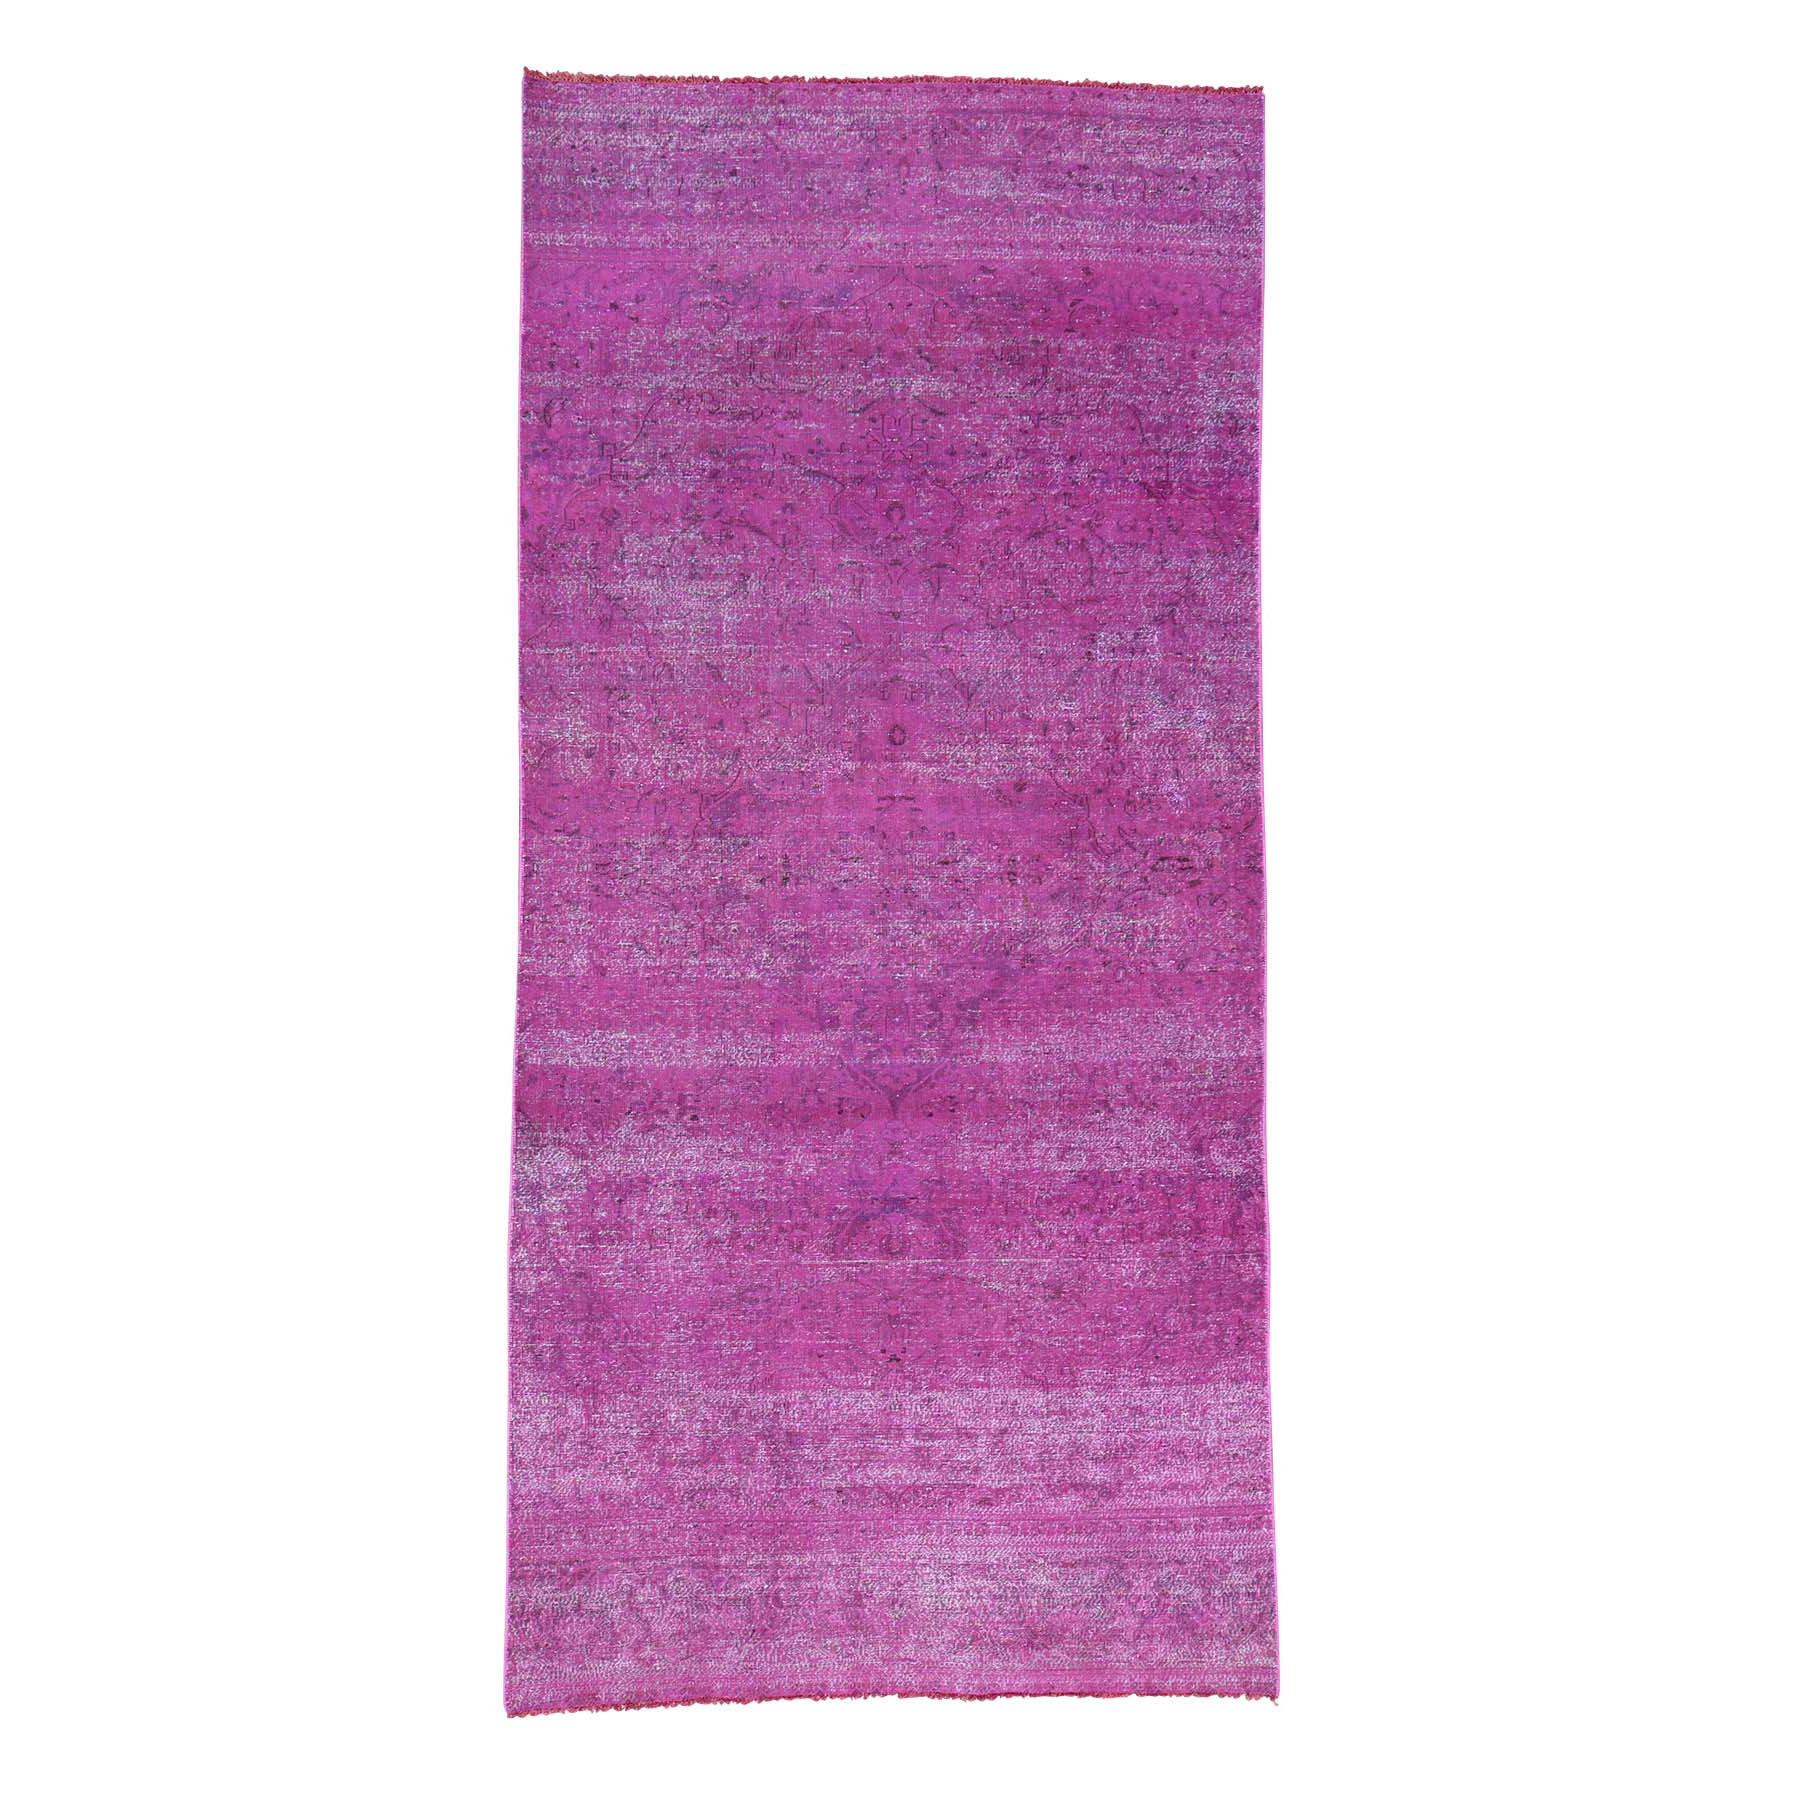 Fetneh Collection And Vintage Overdyed Collection Hand Knotted Pink Rug No: 166638